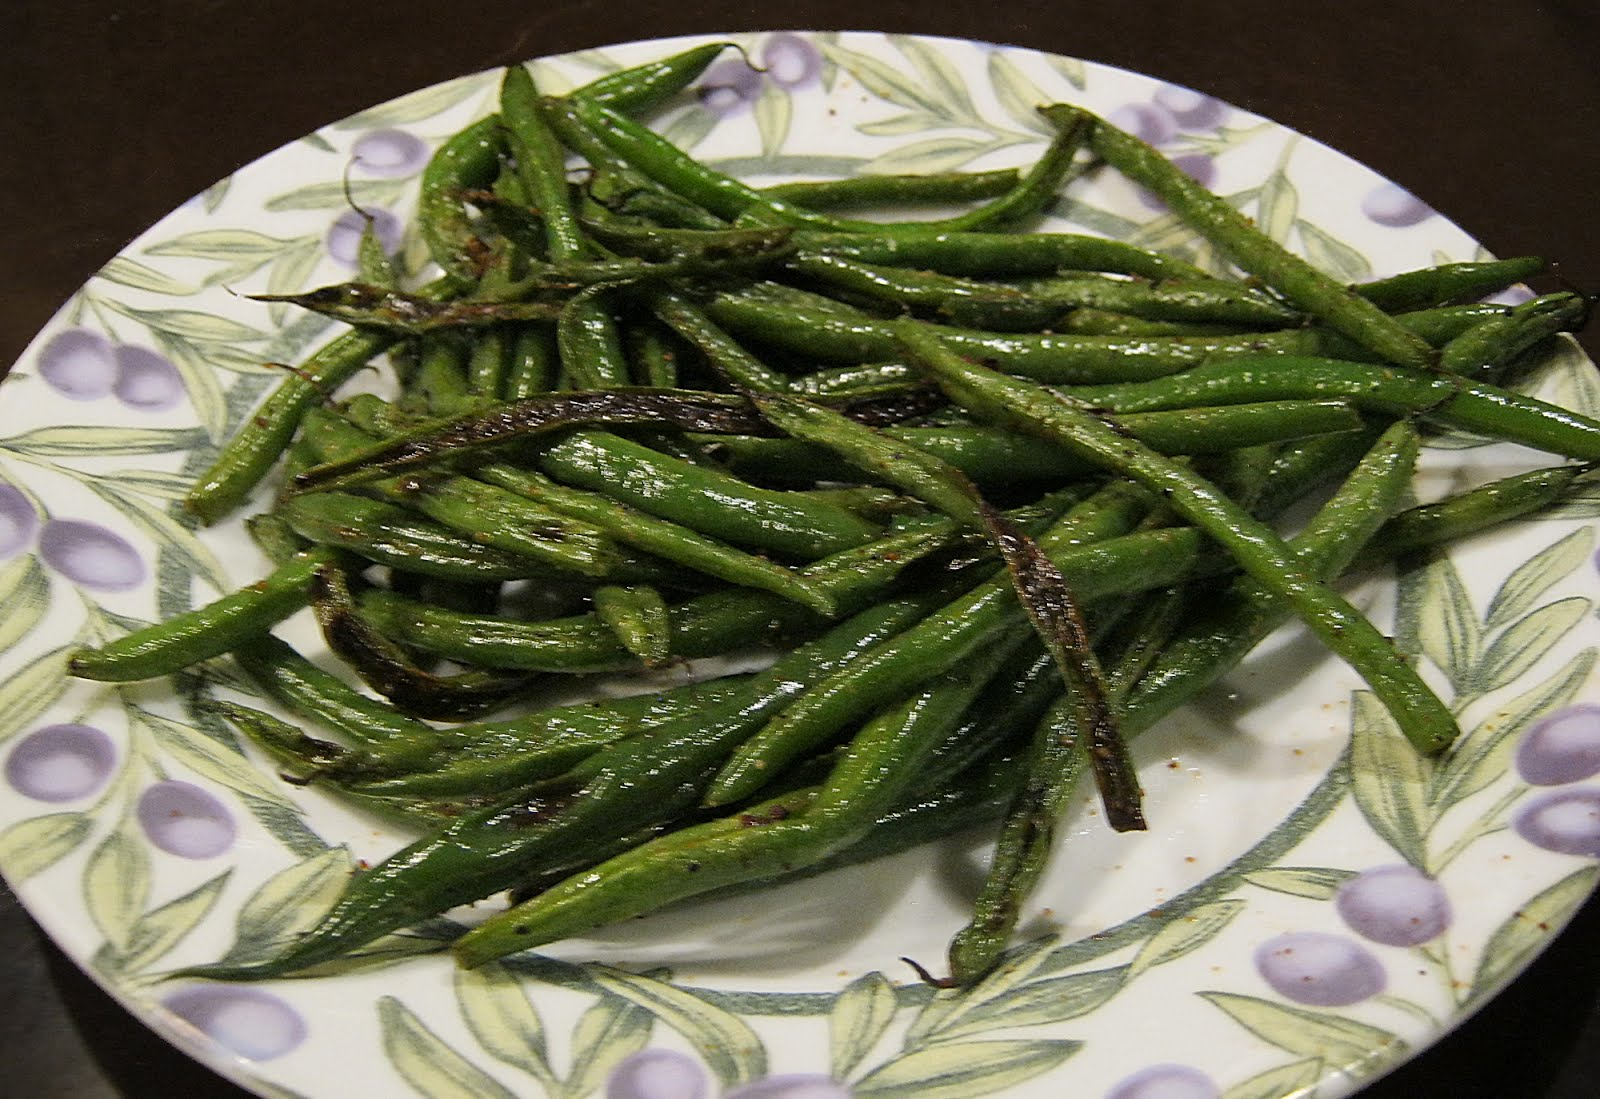 Let the Feasty Begin: Italian Style Roasted Green Beans